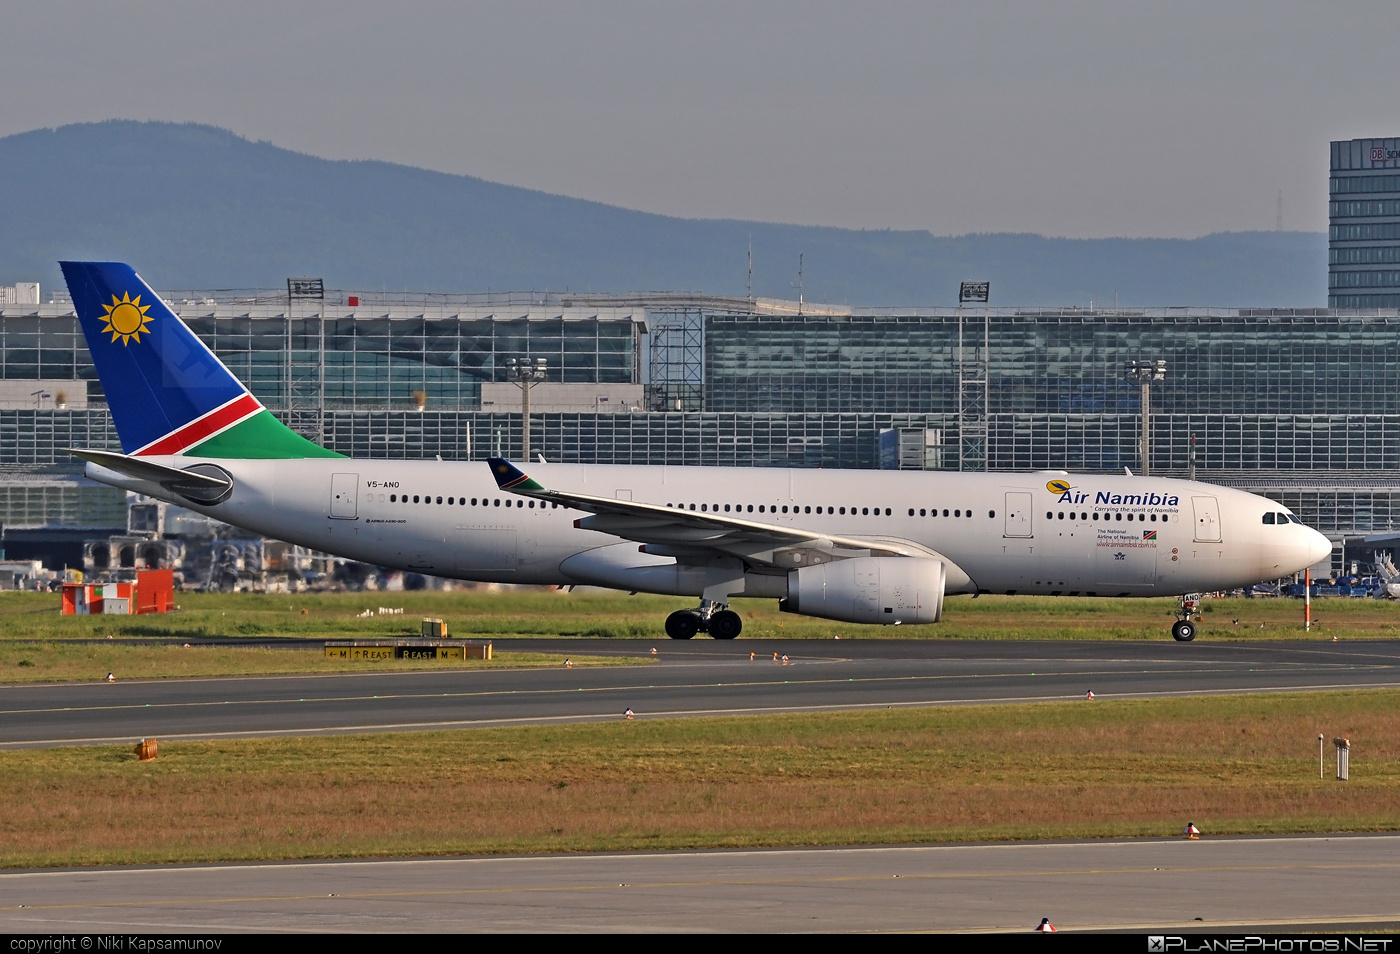 Airbus A330-243 - V5-ANO operated by Air Namibia #a330 #a330family #airbus #airbus330 #airnamibia